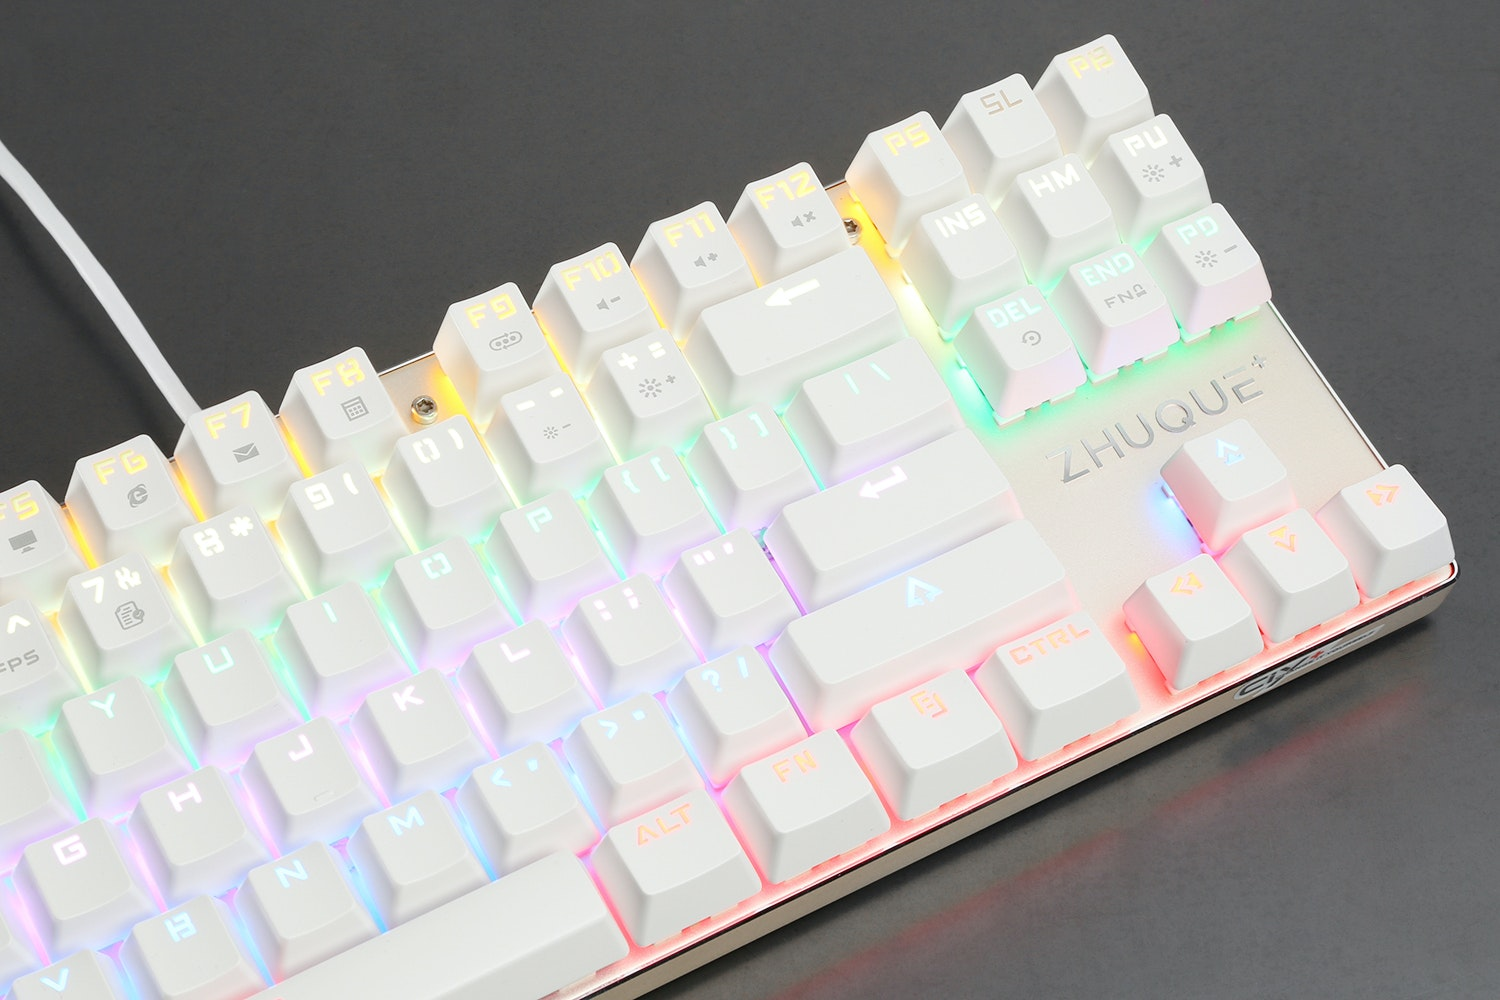 Team Wolf TKL Swappable Switch Mechanical Keyboard